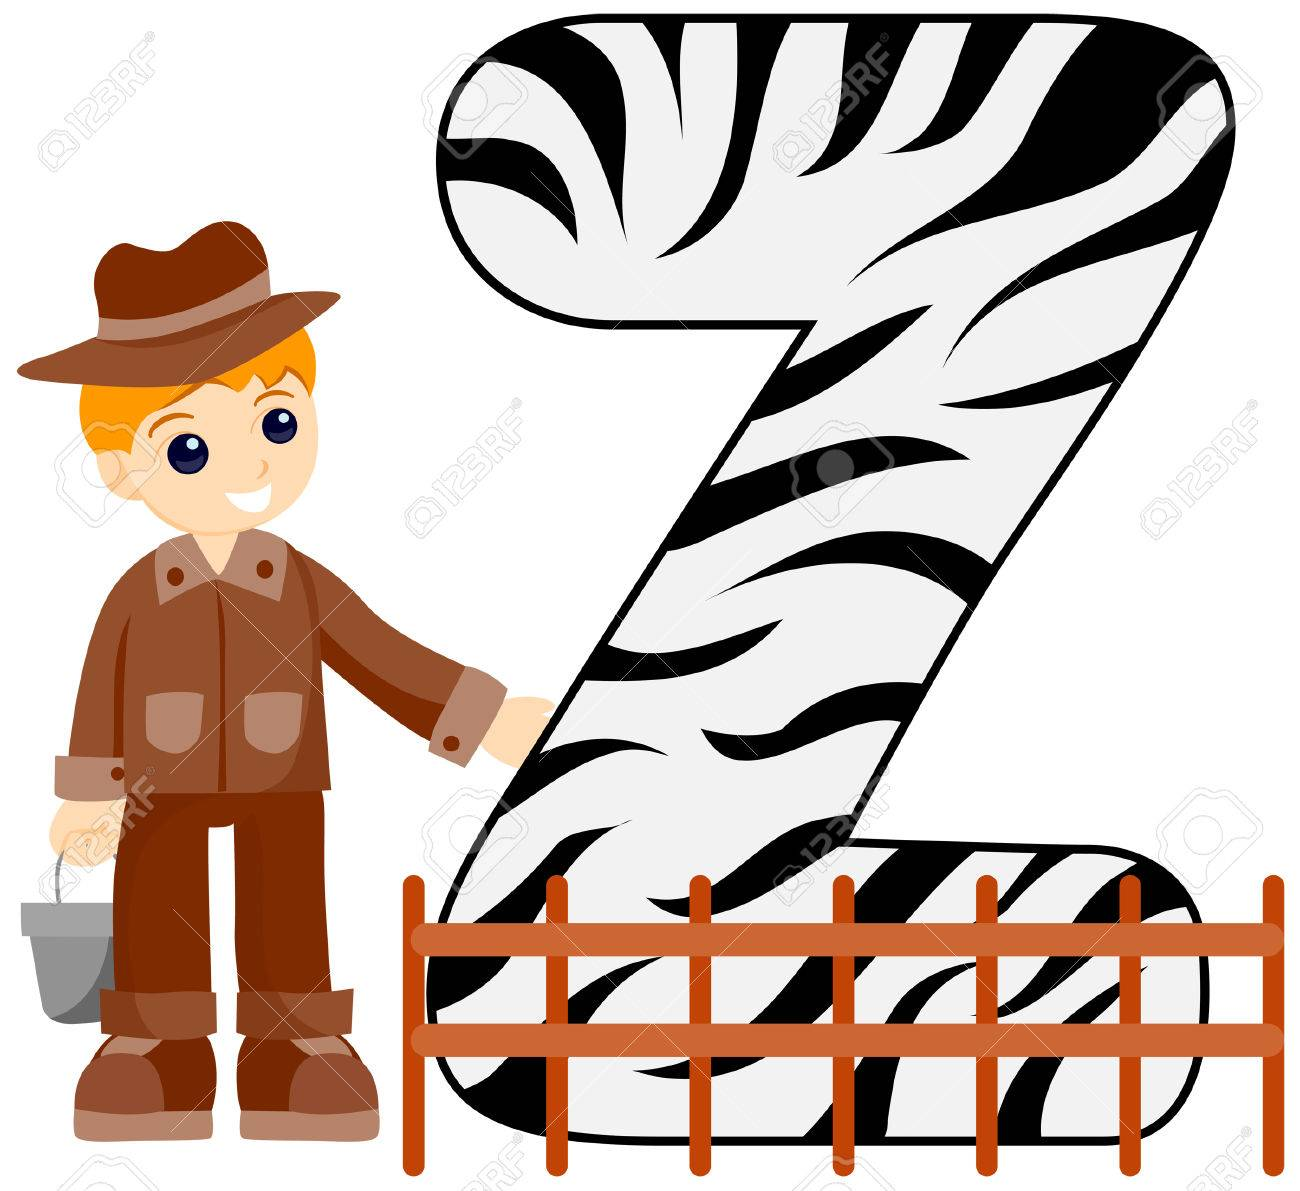 Alphabet Kids (Zoo Keeper) with Clipping Path Stock Vector - 3469870